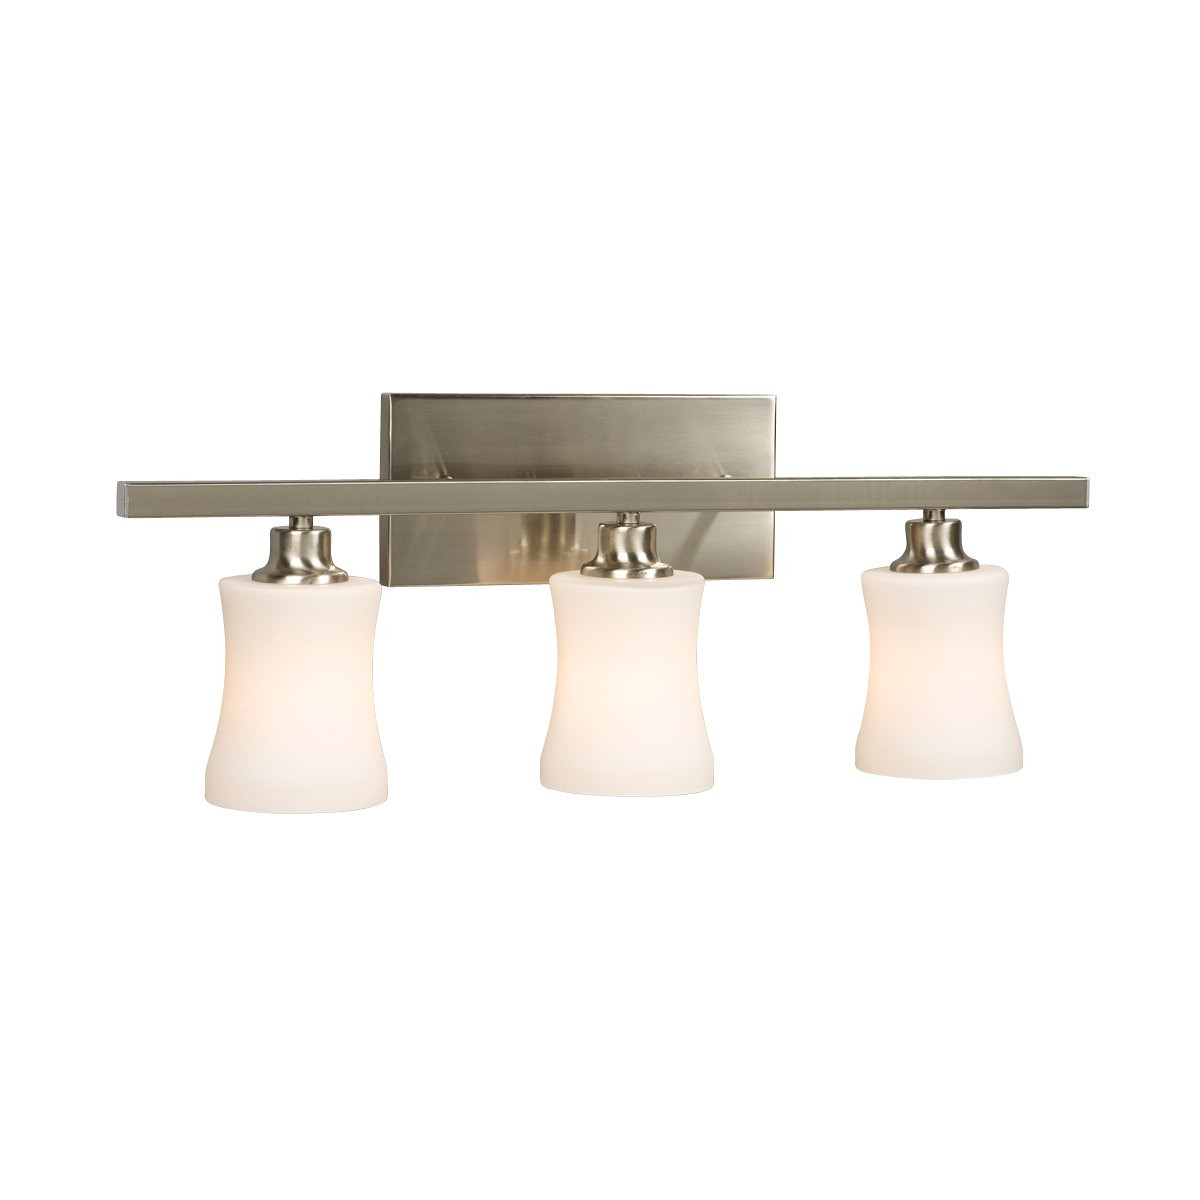 Best ideas about Bathroom Light Fixtures Lowes . Save or Pin Bathroom Lighting Fixtures At Lowes Wonderful Gray Now.